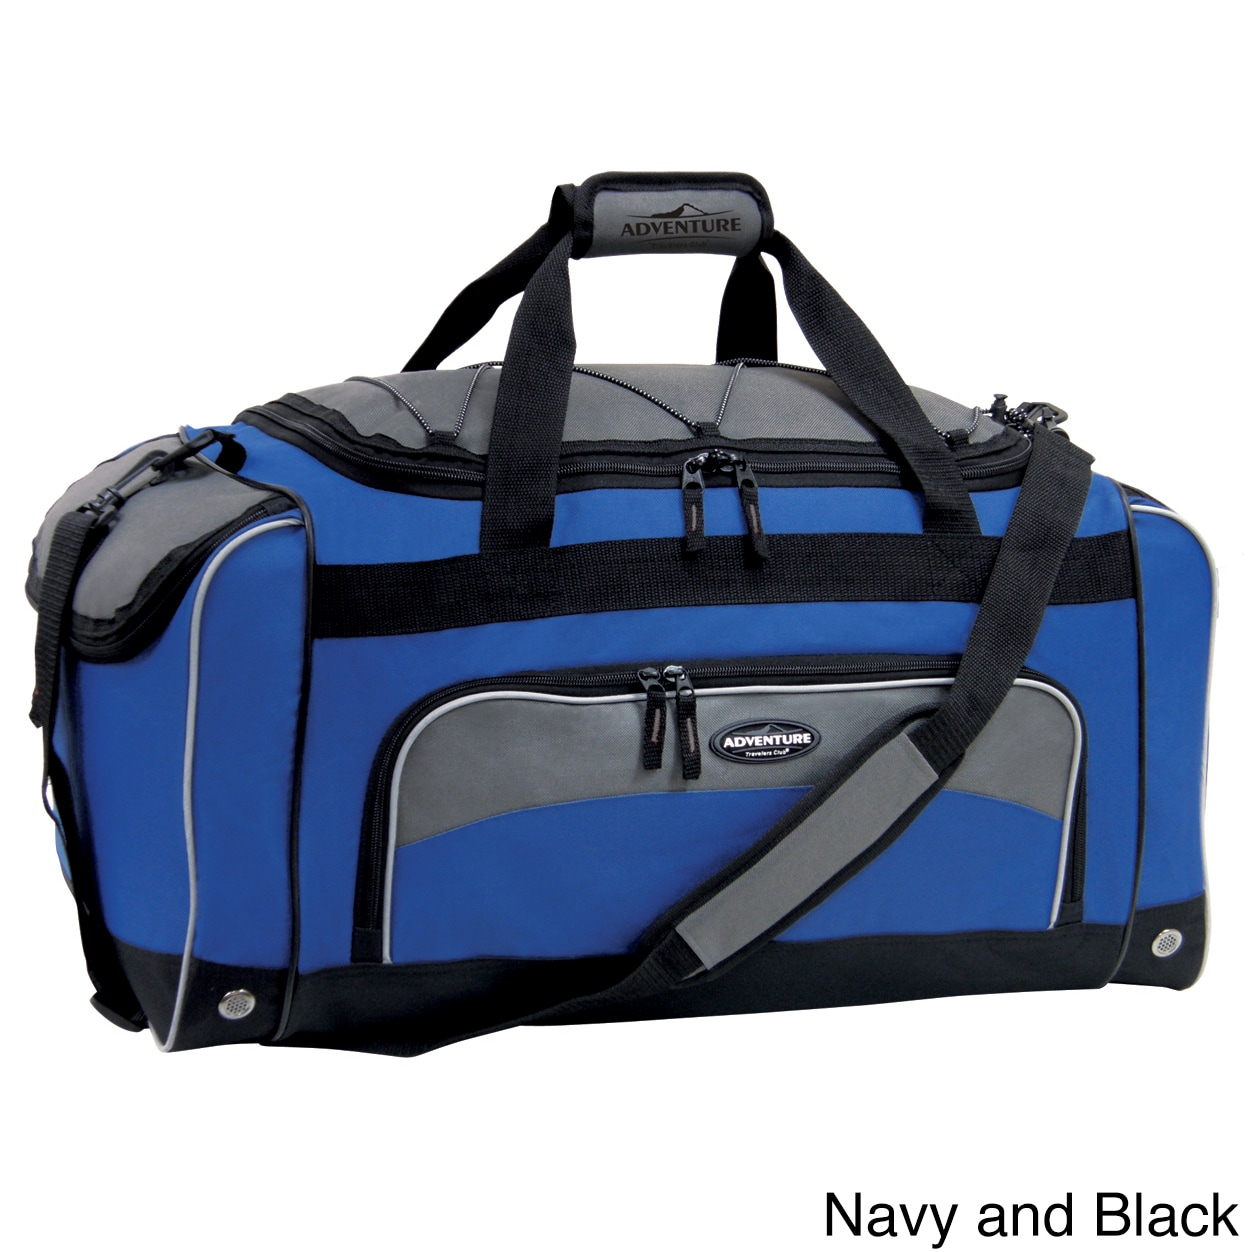 Traveler's Club Luggage Traveler's Club Adventurer Duffel Collection 24-inch Sport Duffel with Wet Shoe Pocket at Sears.com